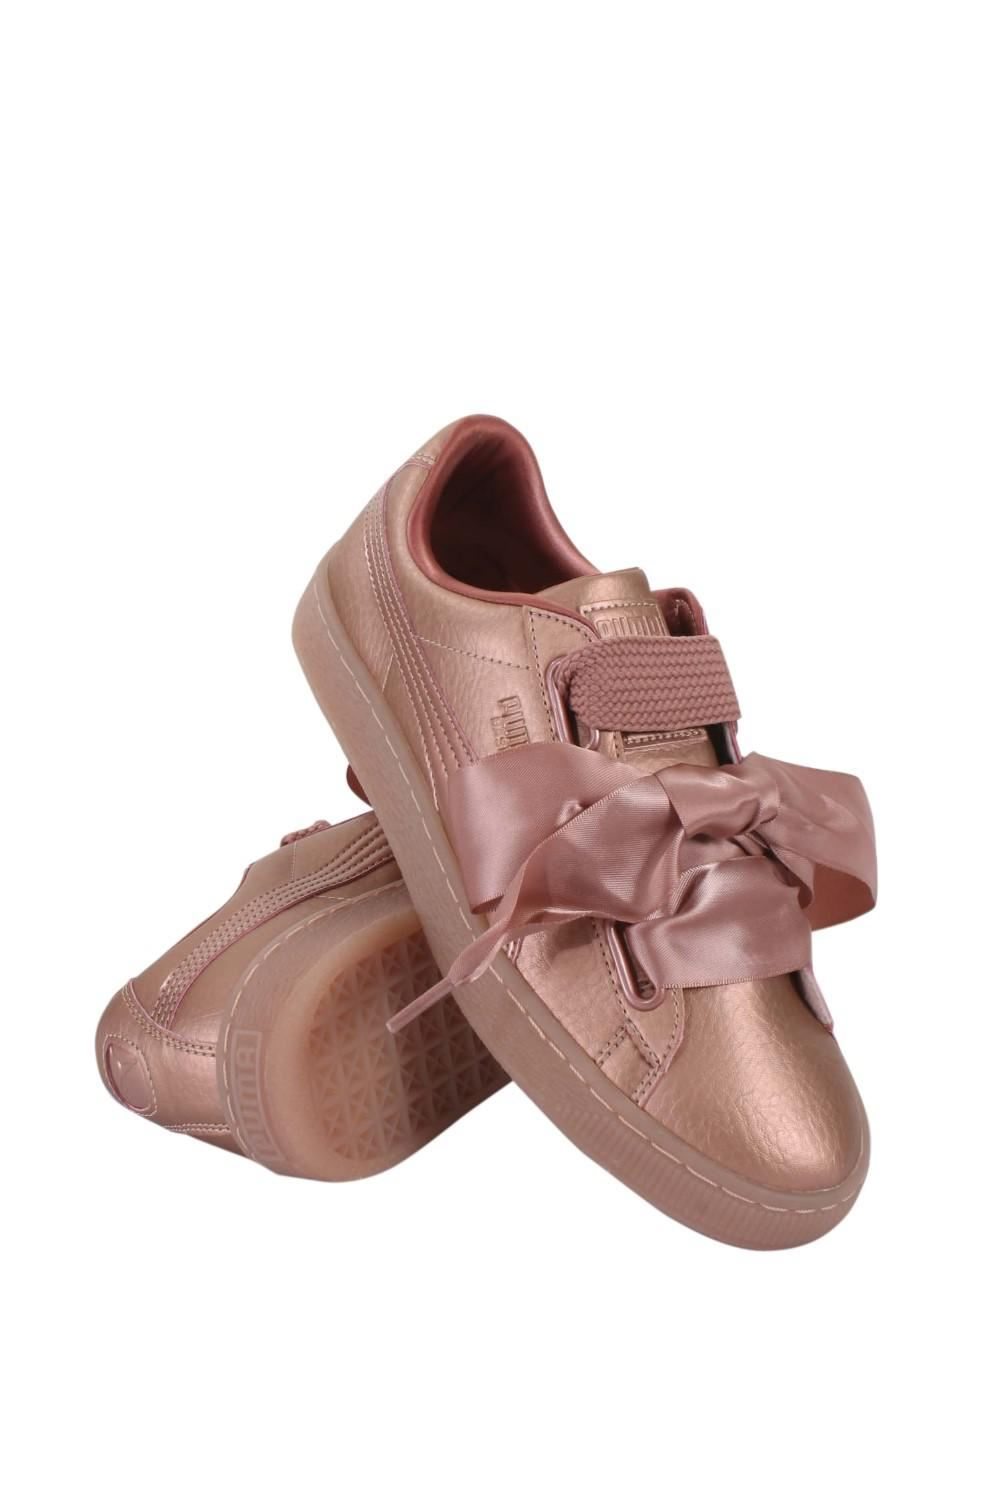 eb1267caeaa PUMA Womens Copper Pink Basket Heart Patent Trainers UK 6. About this  product. Stock photo  Picture 1 of 4  Picture 2 of 4  Picture 3 of 4